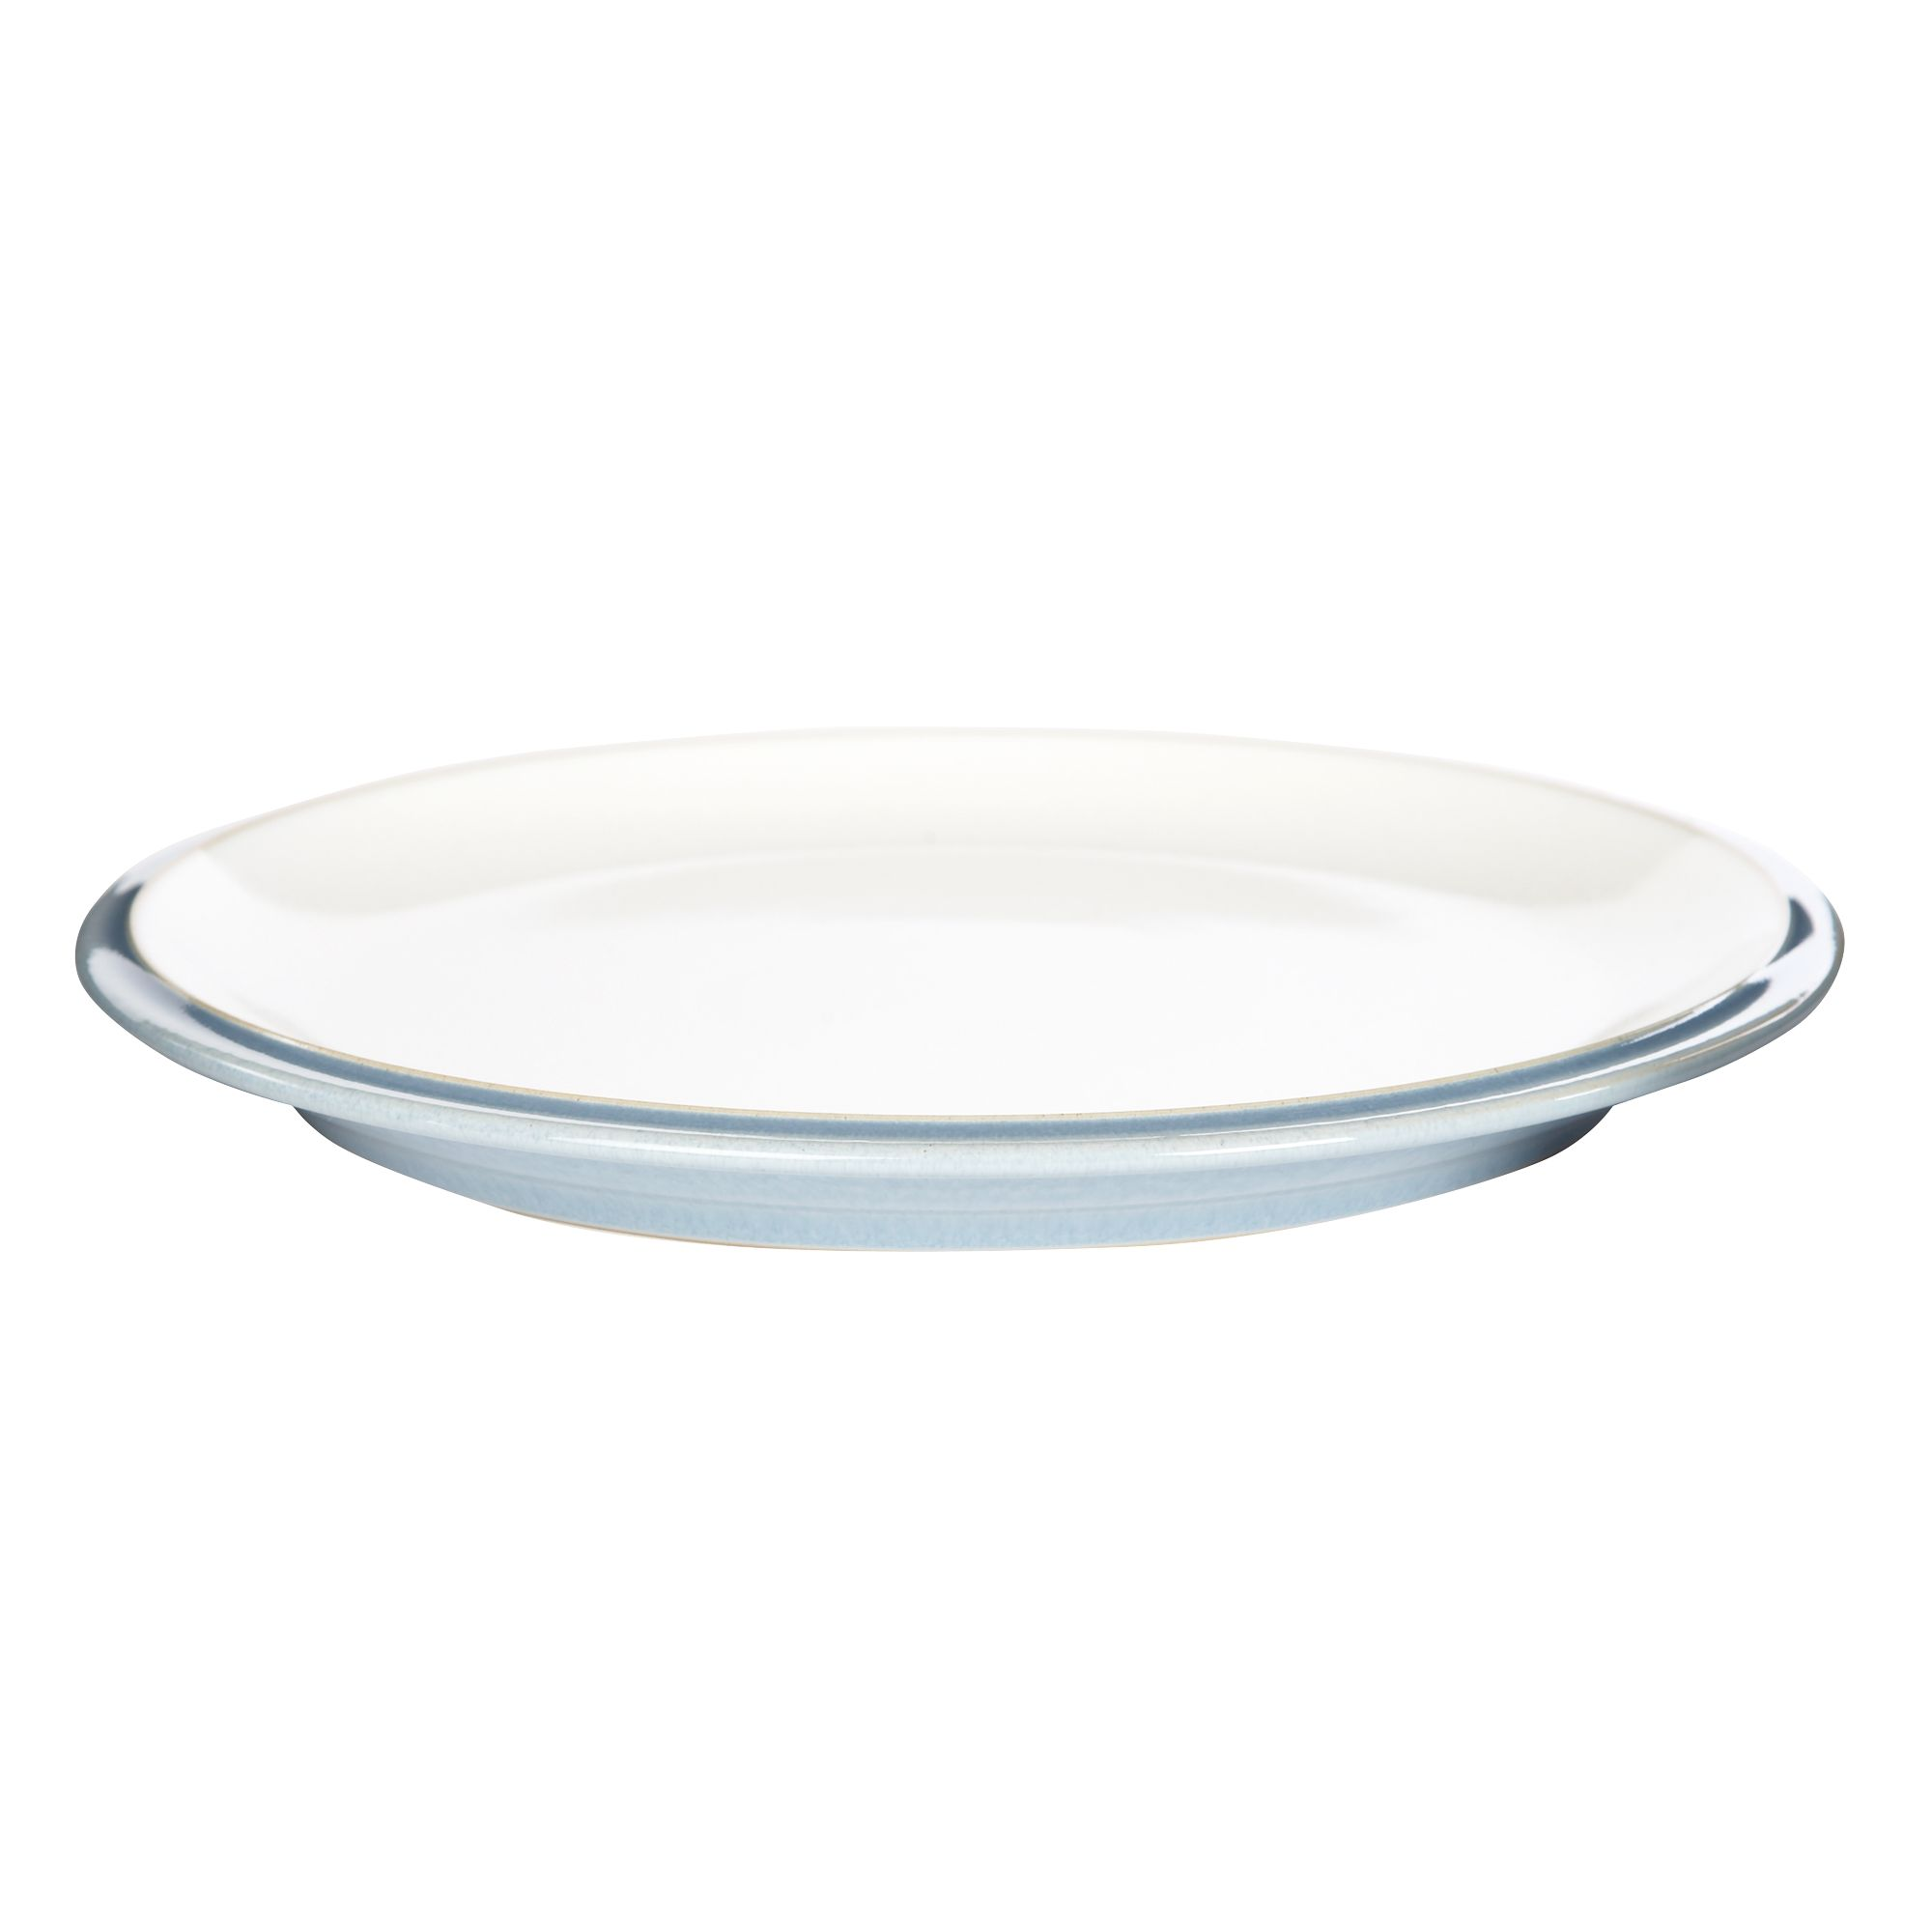 White Jetty salad plate